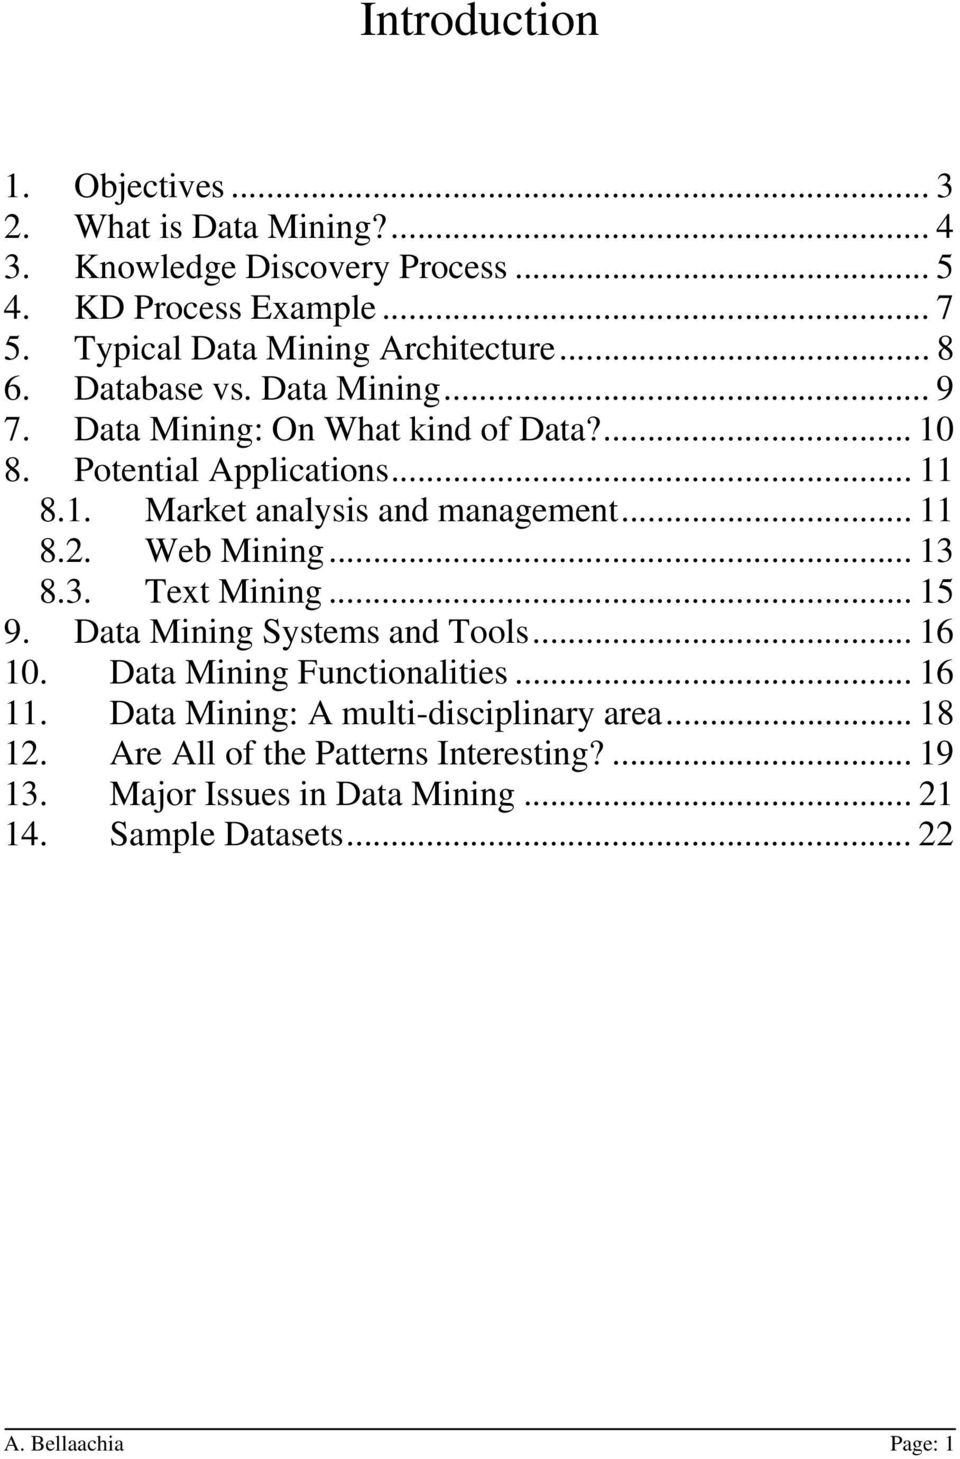 .. 11 8.2. Web Mining... 13 8.3. Text Mining... 15 9. Data Mining Systems and Tools... 16 10. Data Mining Functionalities... 16 11.